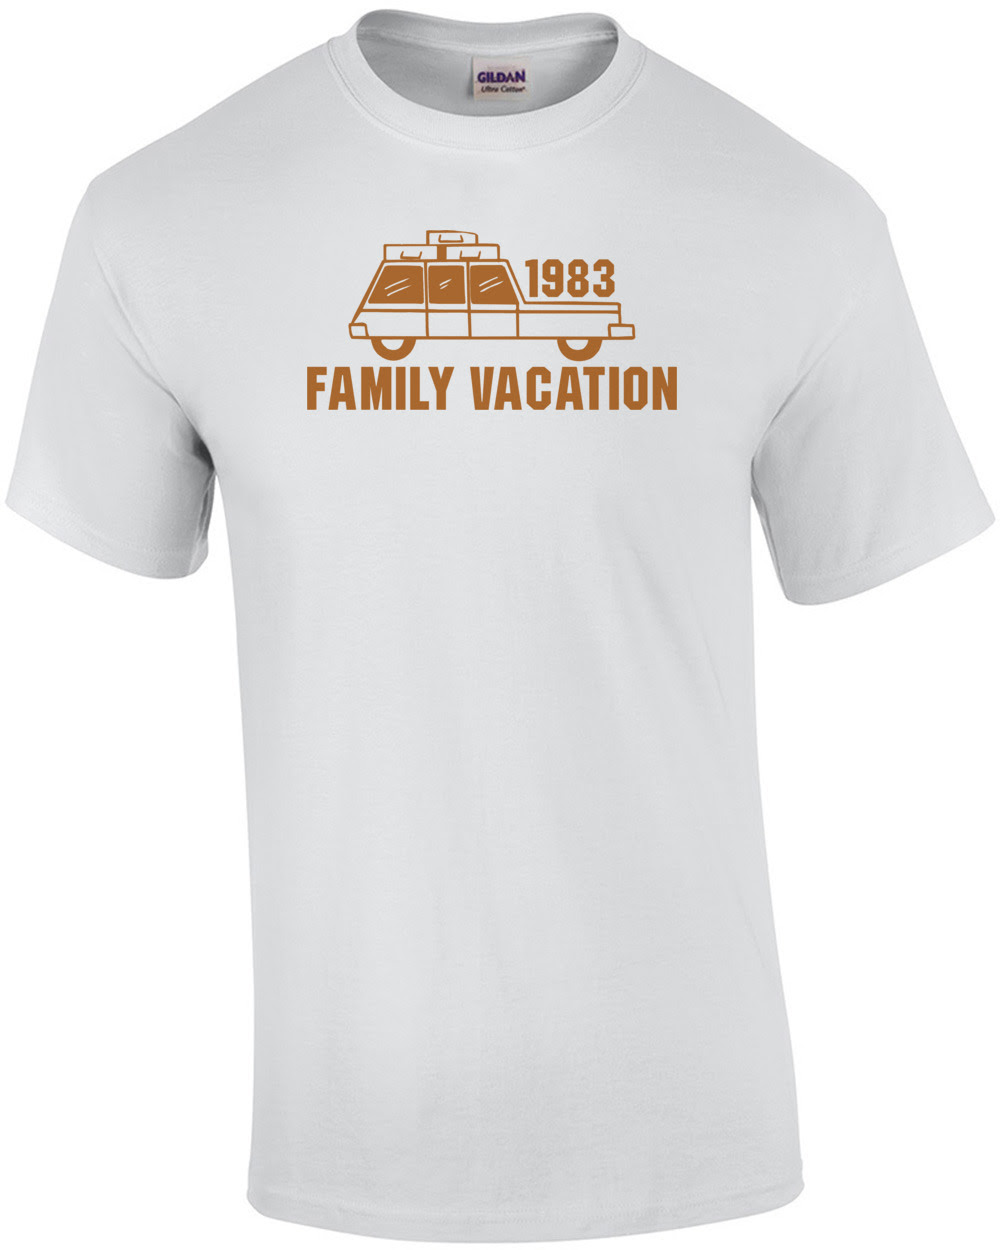 Funny Family Quotes For T Shirts